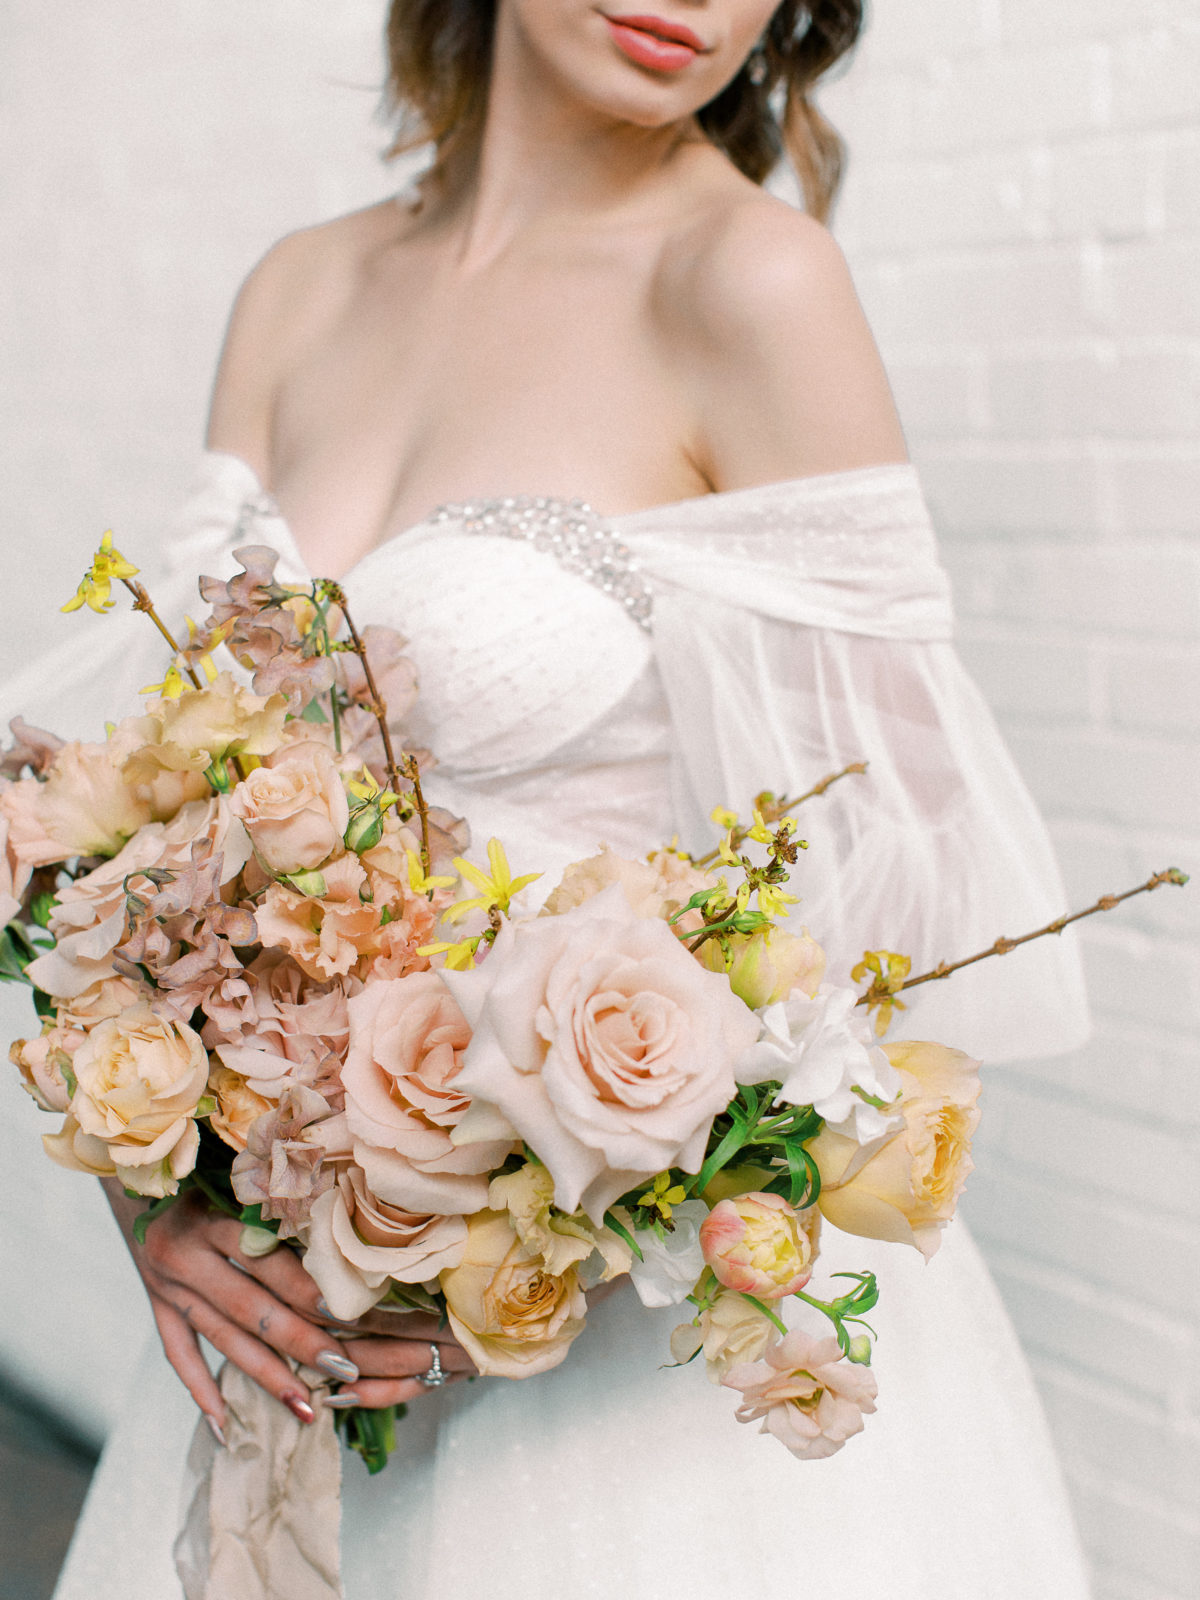 Whimsical Wedding Inspiration at The Place at Tyler from The Bridal Masterclass featured on Alexa Kay Events